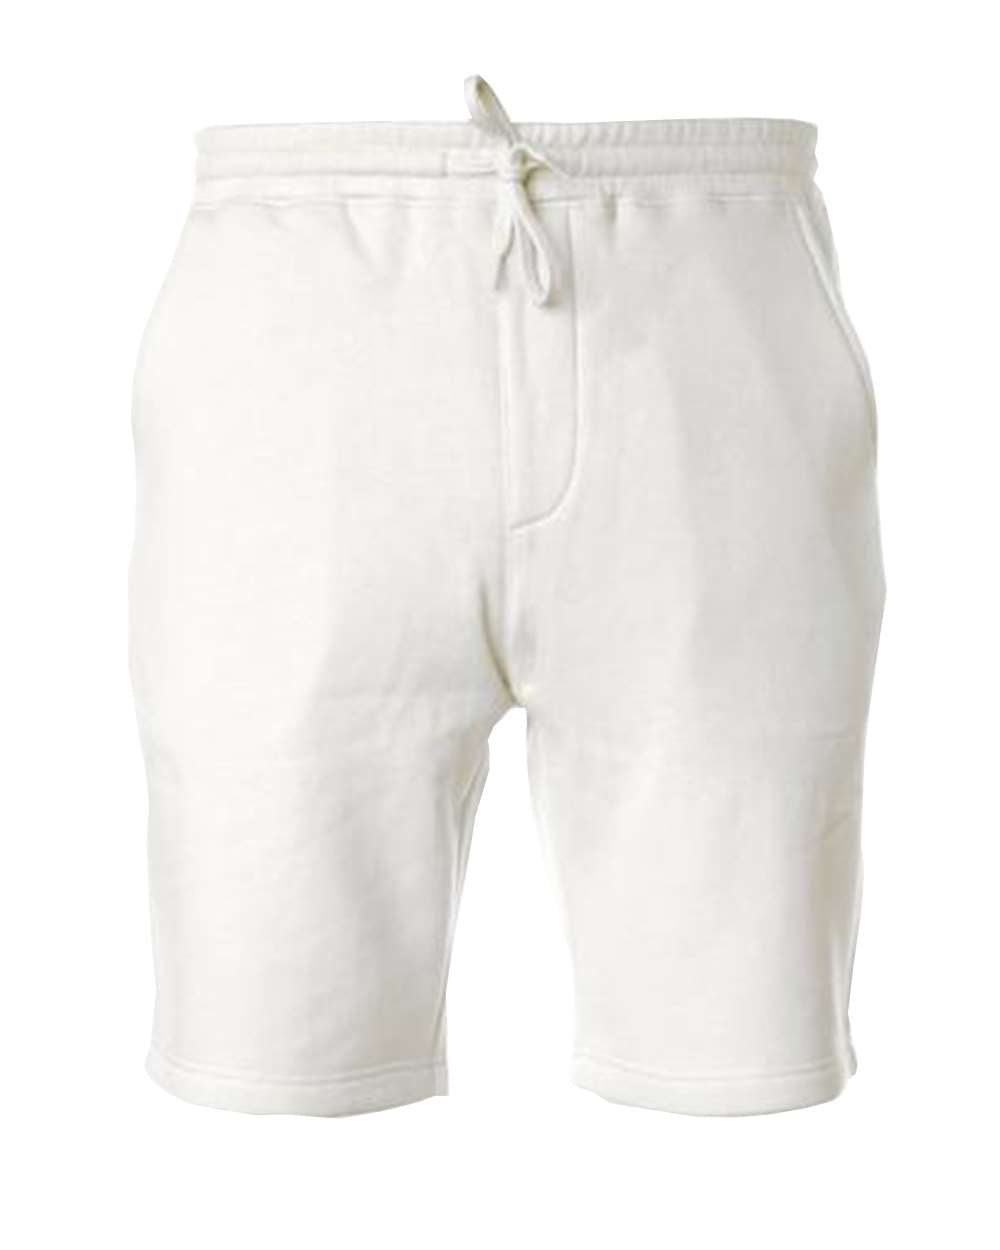 White Fleece Shorts